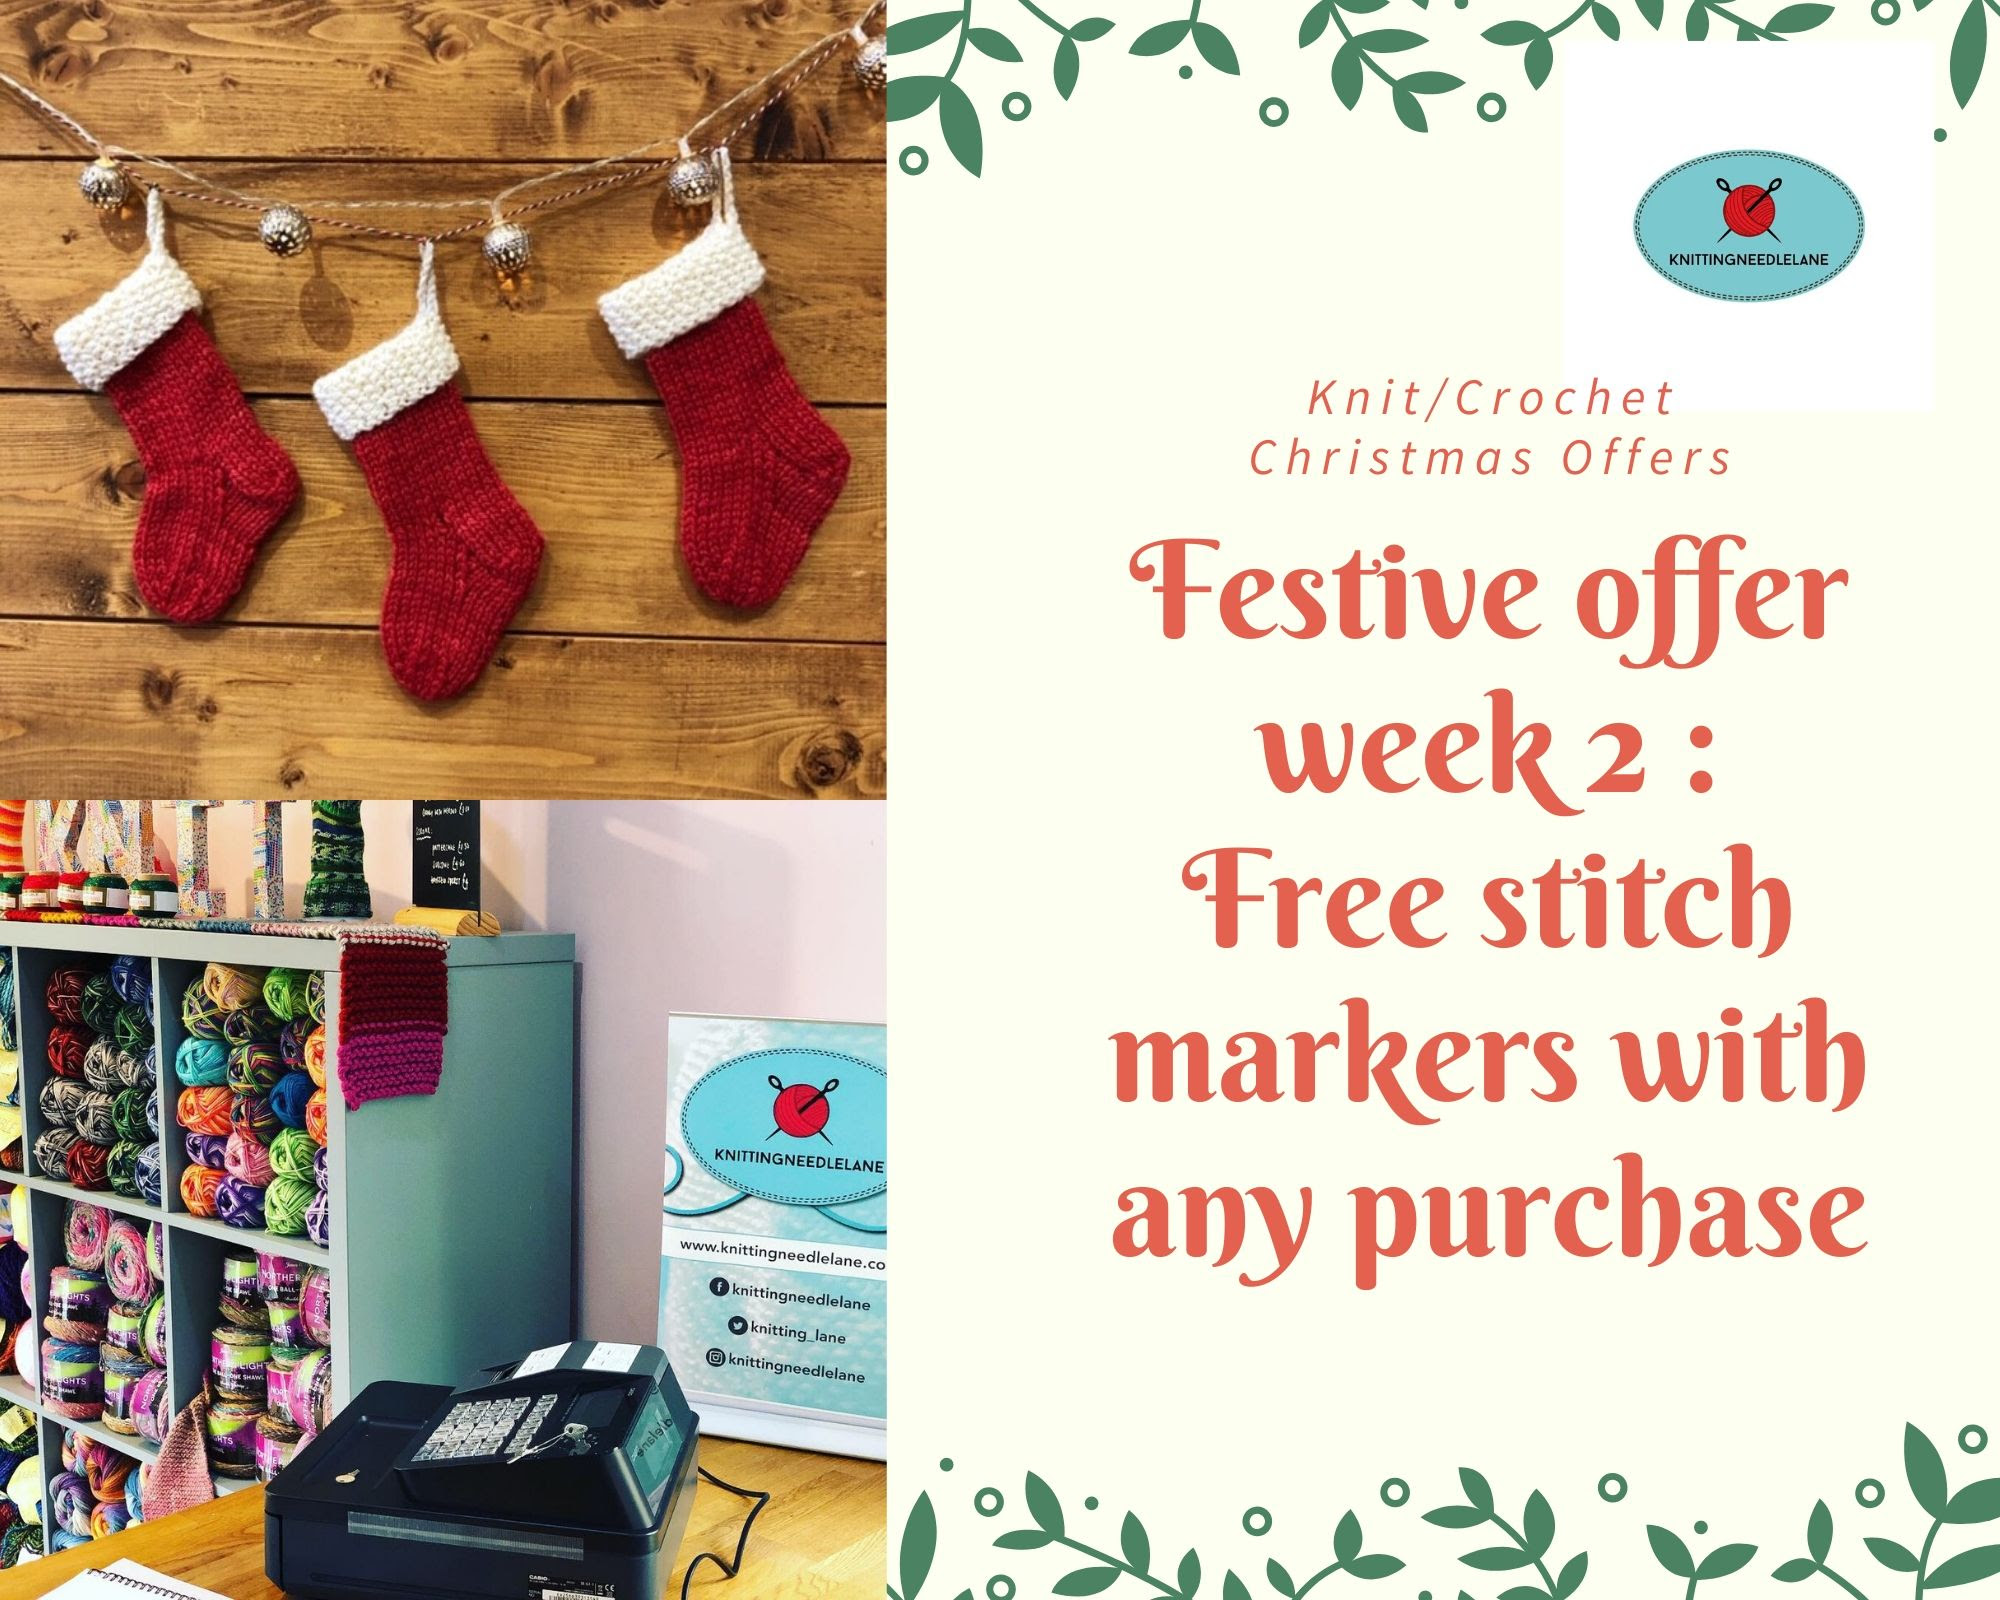 2 free stitch markers with purchases from Knitting Needle Lane this week